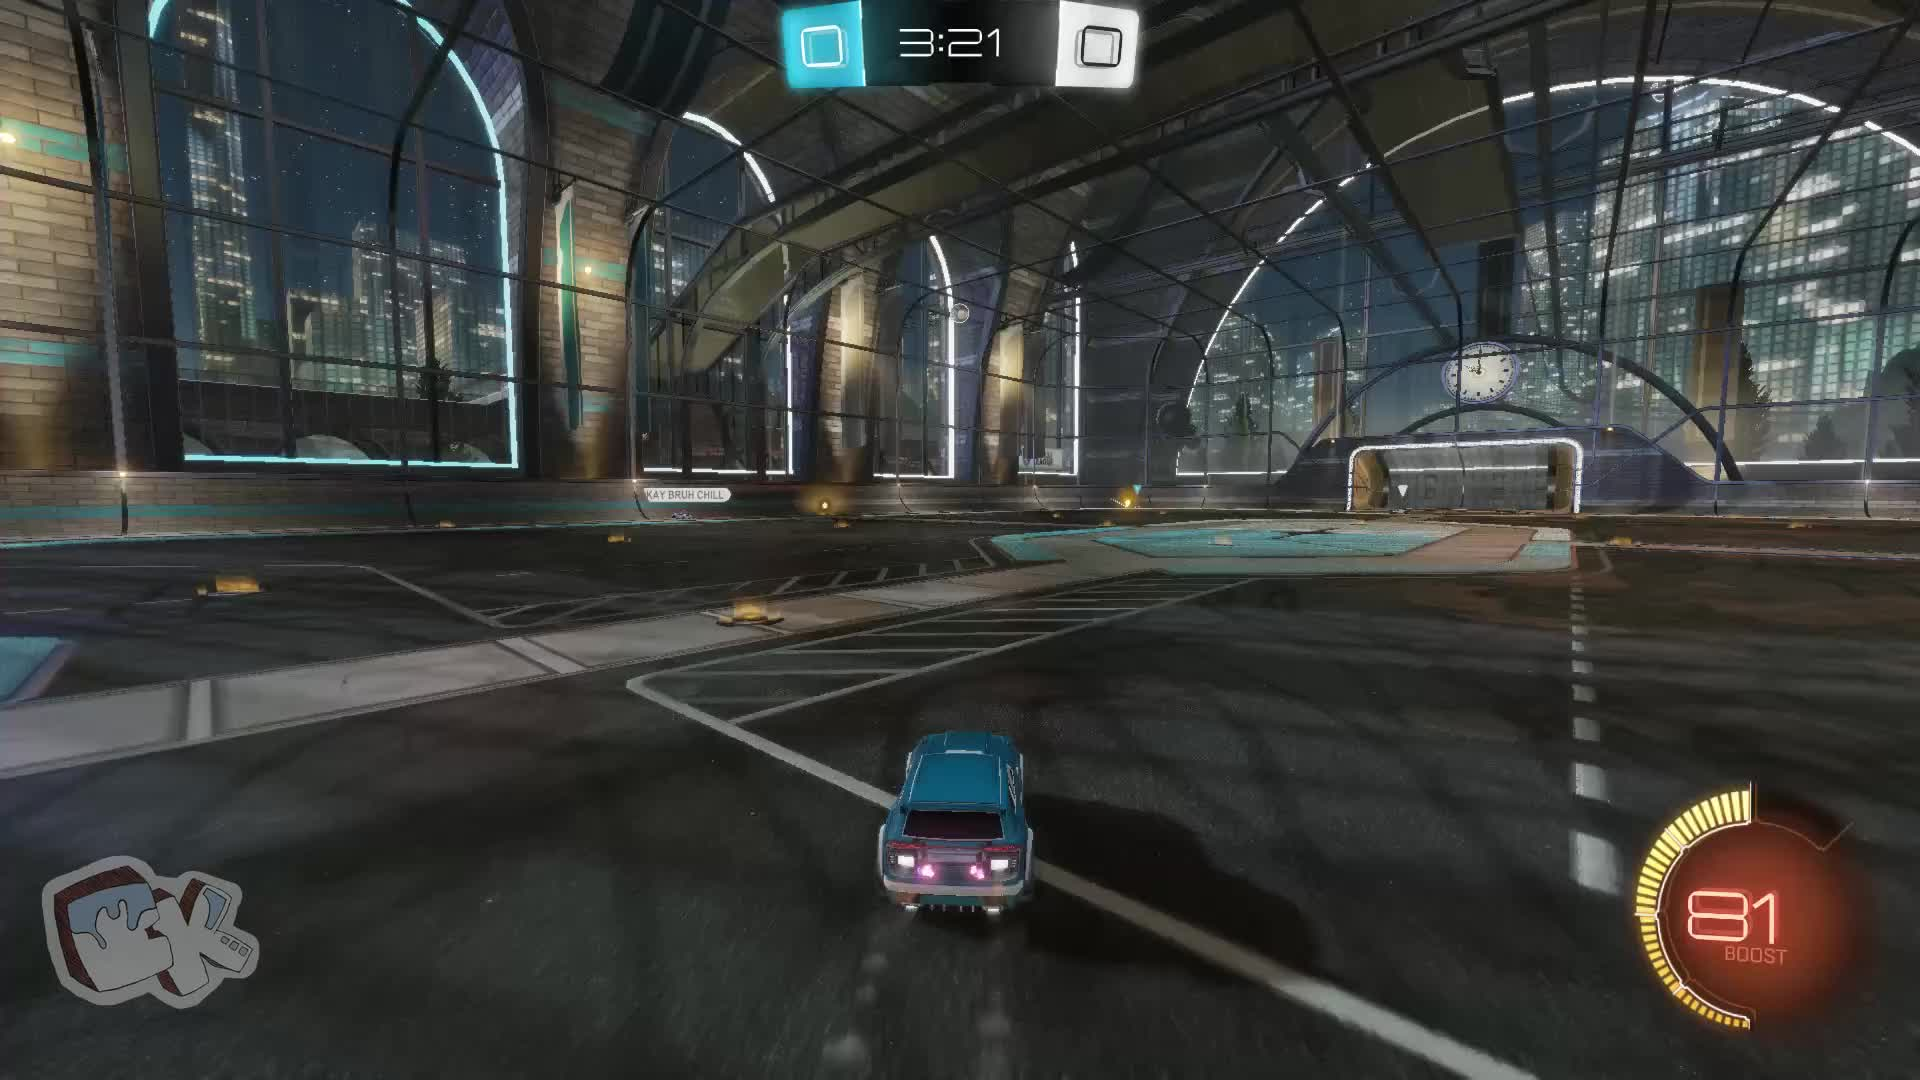 CKM07, Gif Your Game, GifYourGame, Goal, Rocket League, RocketLeague, Goal 1: CKM07 GIFs